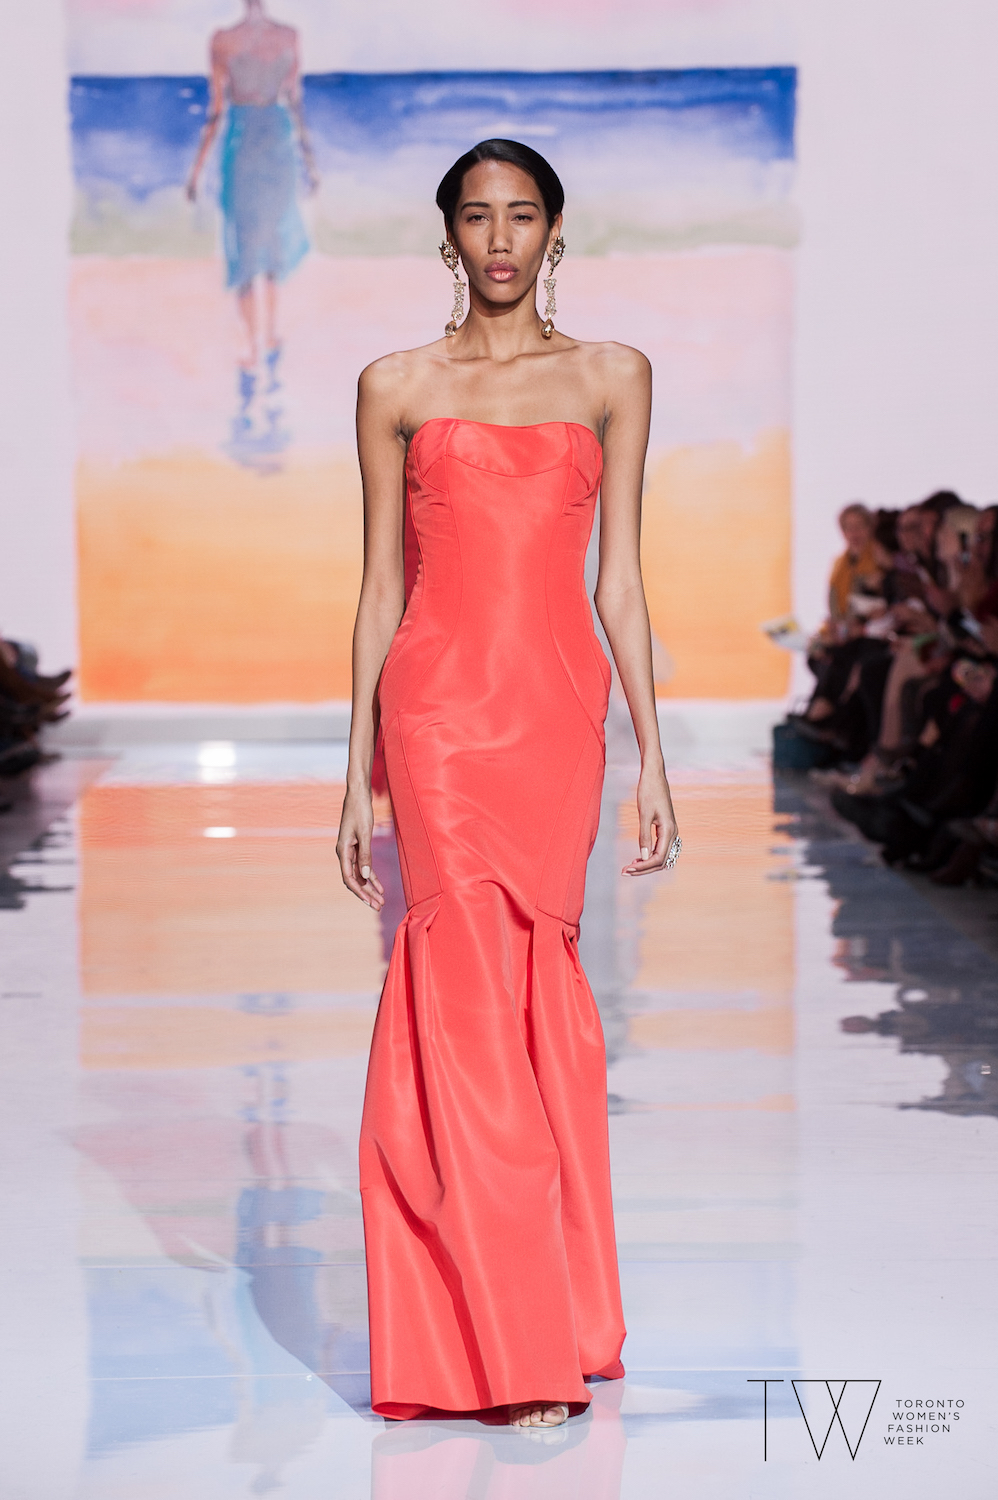 david-dixon-dr-john-semple-tw-toronto-womens-fashion-week-photo-credit-che-rosales-coral-look-1.jpg